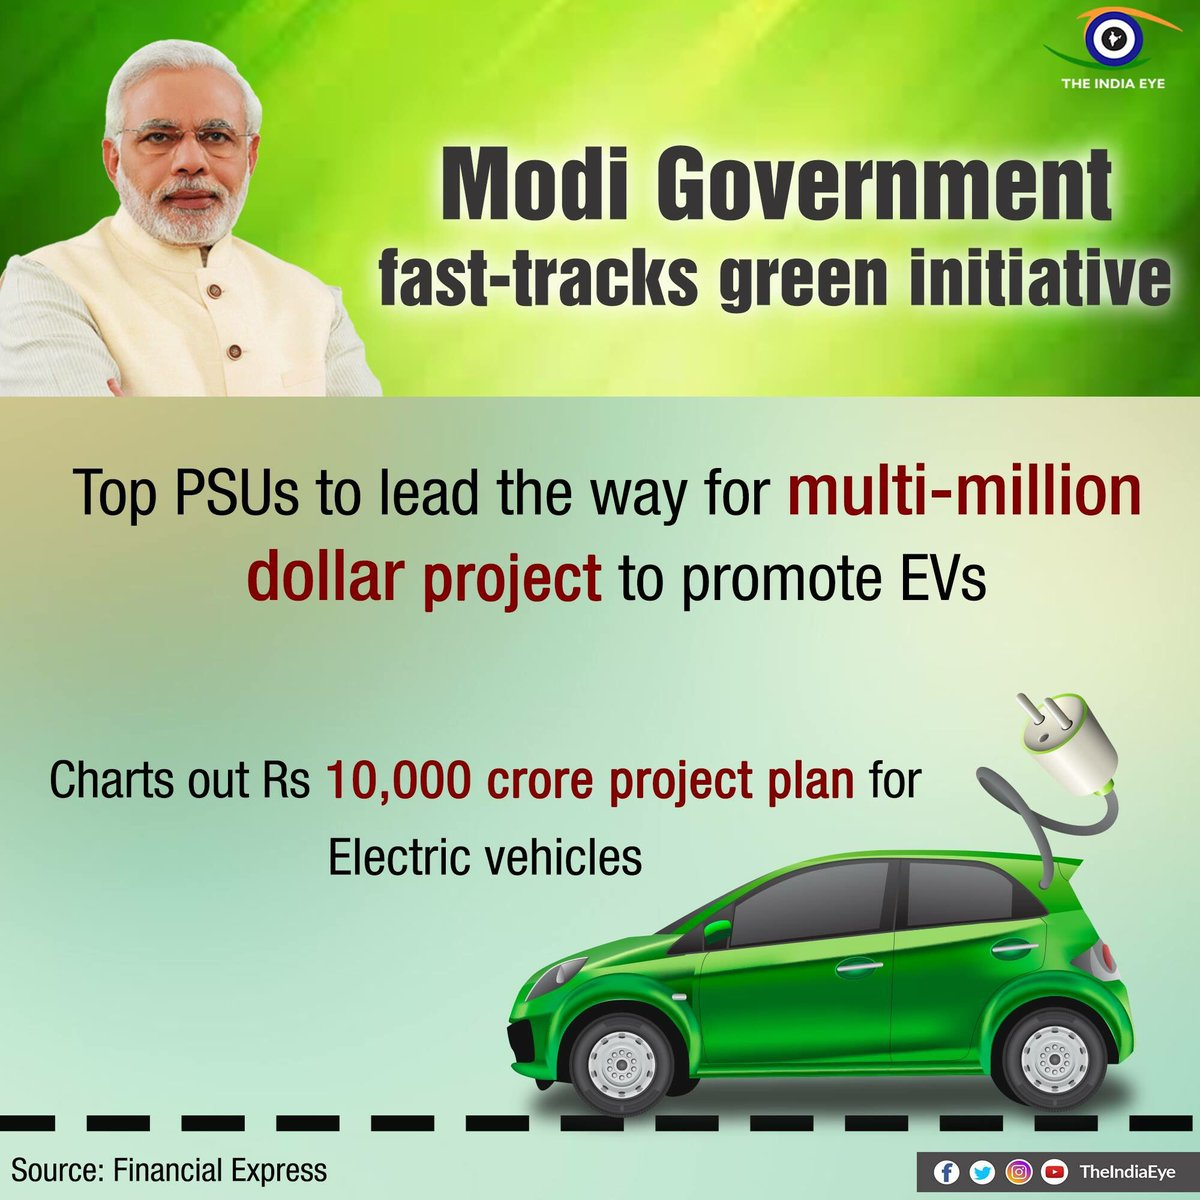 Modi Govt. fast-tracks green initiative #D dream Electronic Vehicle will soon become reality to crib Pollution. #TransformingIndia<br>http://pic.twitter.com/jZJfls0m7B